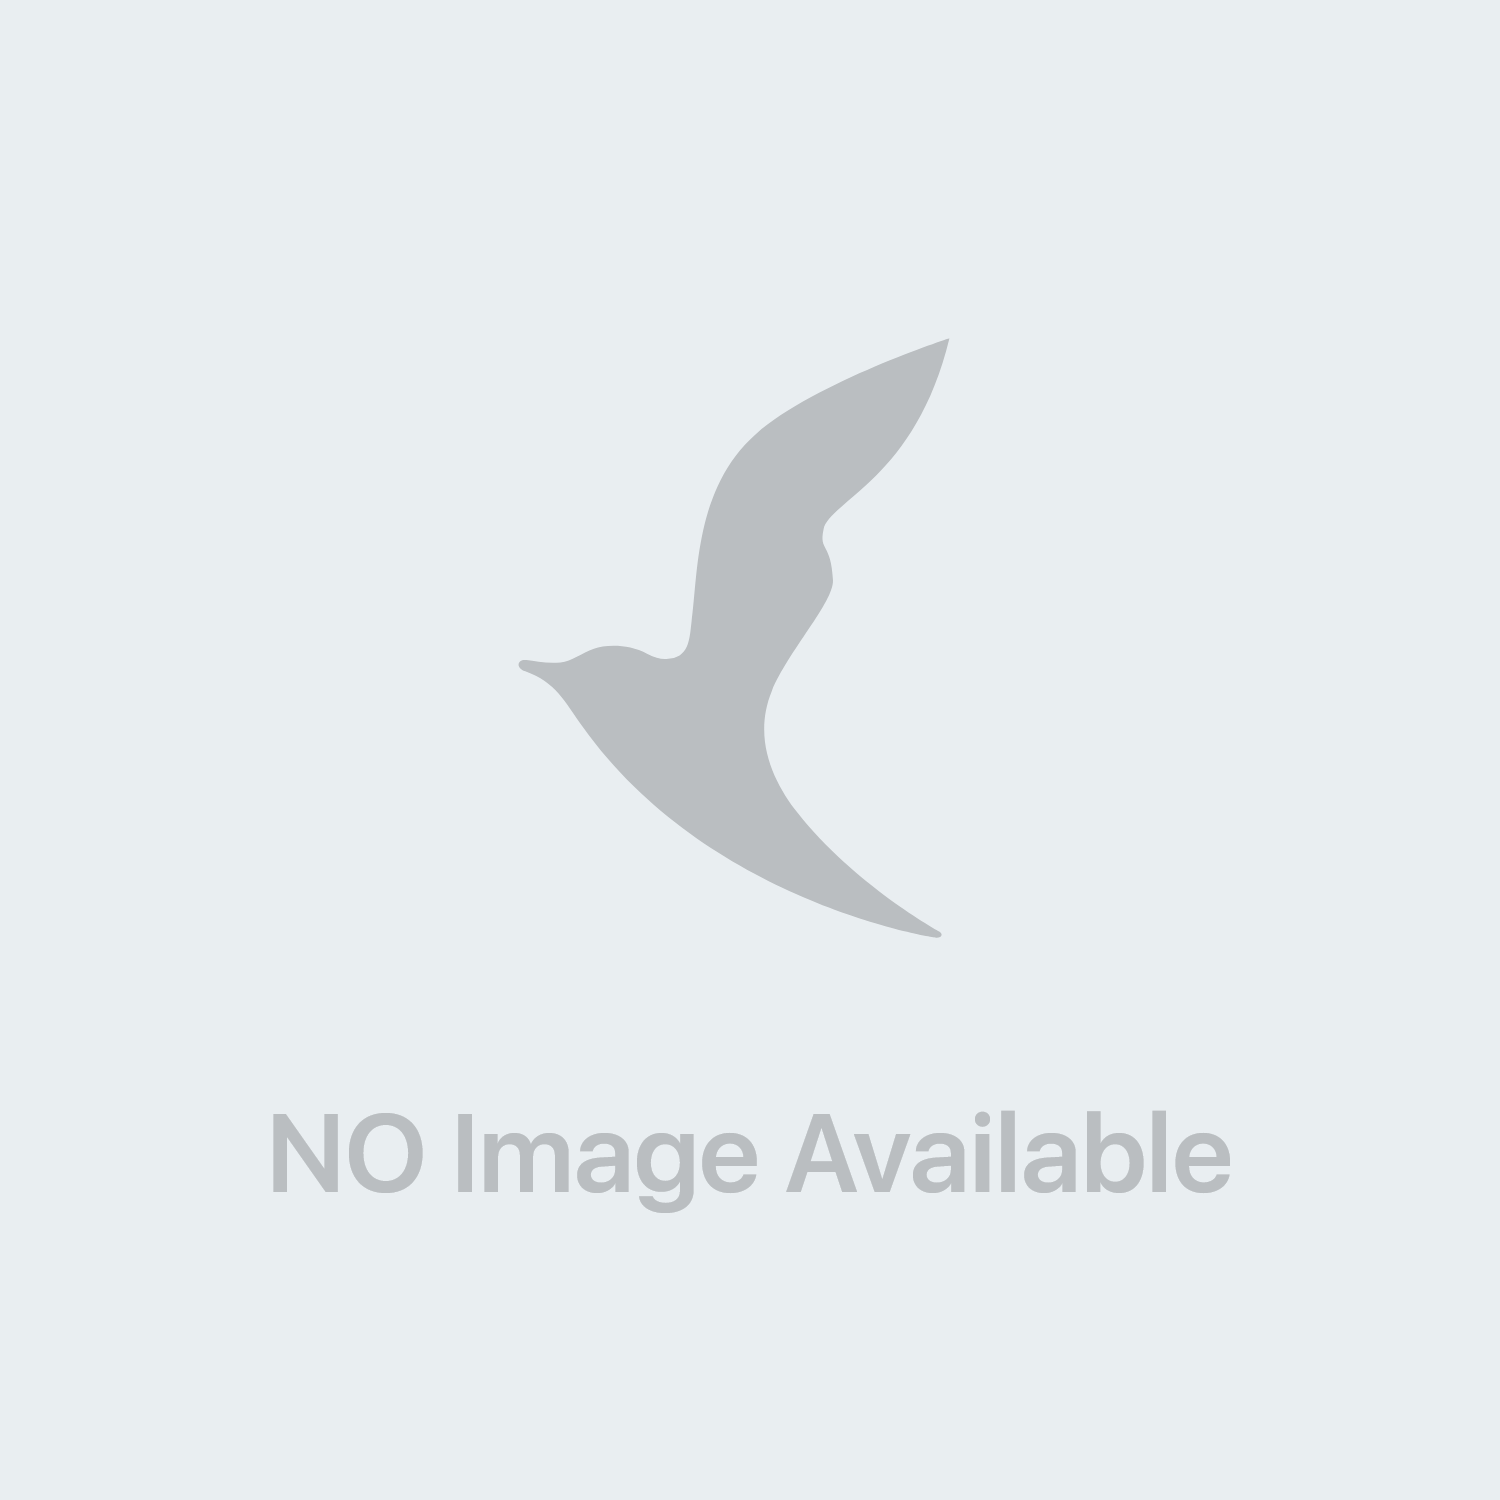 Kavoflog Spray 0.25%15 Ml